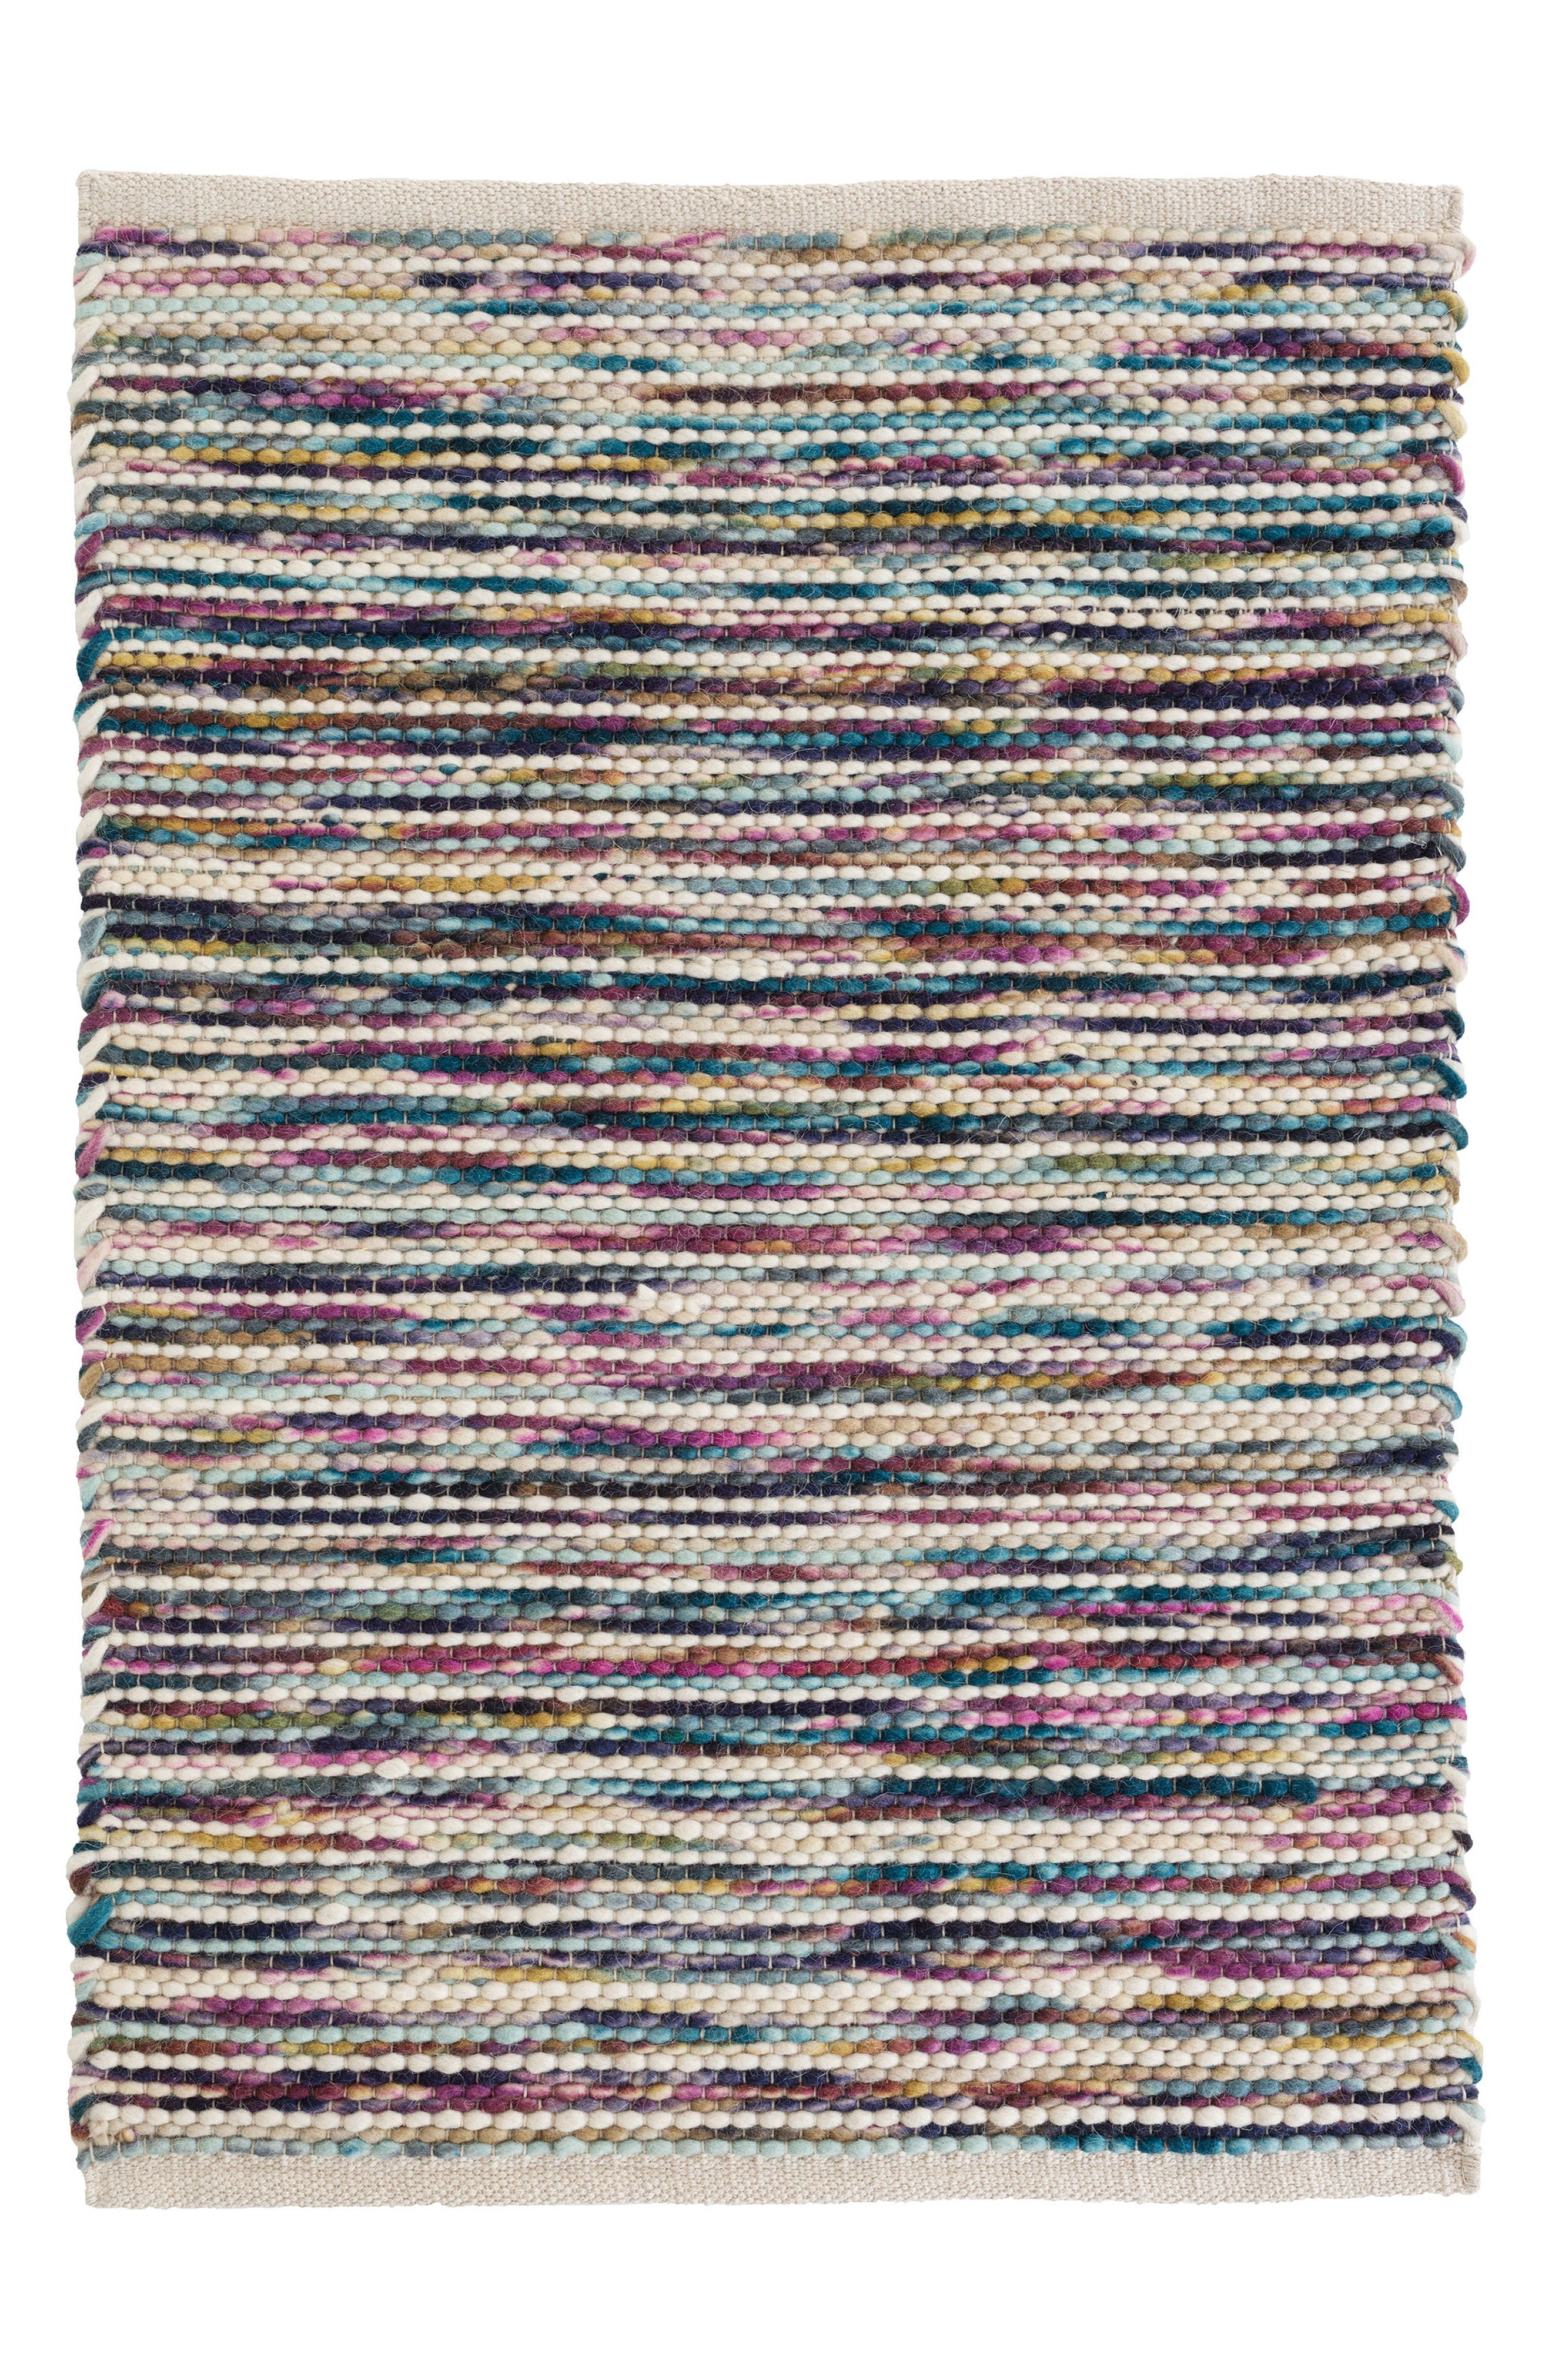 Lytton Woven Wool Rug,                         Main,                         color, 400